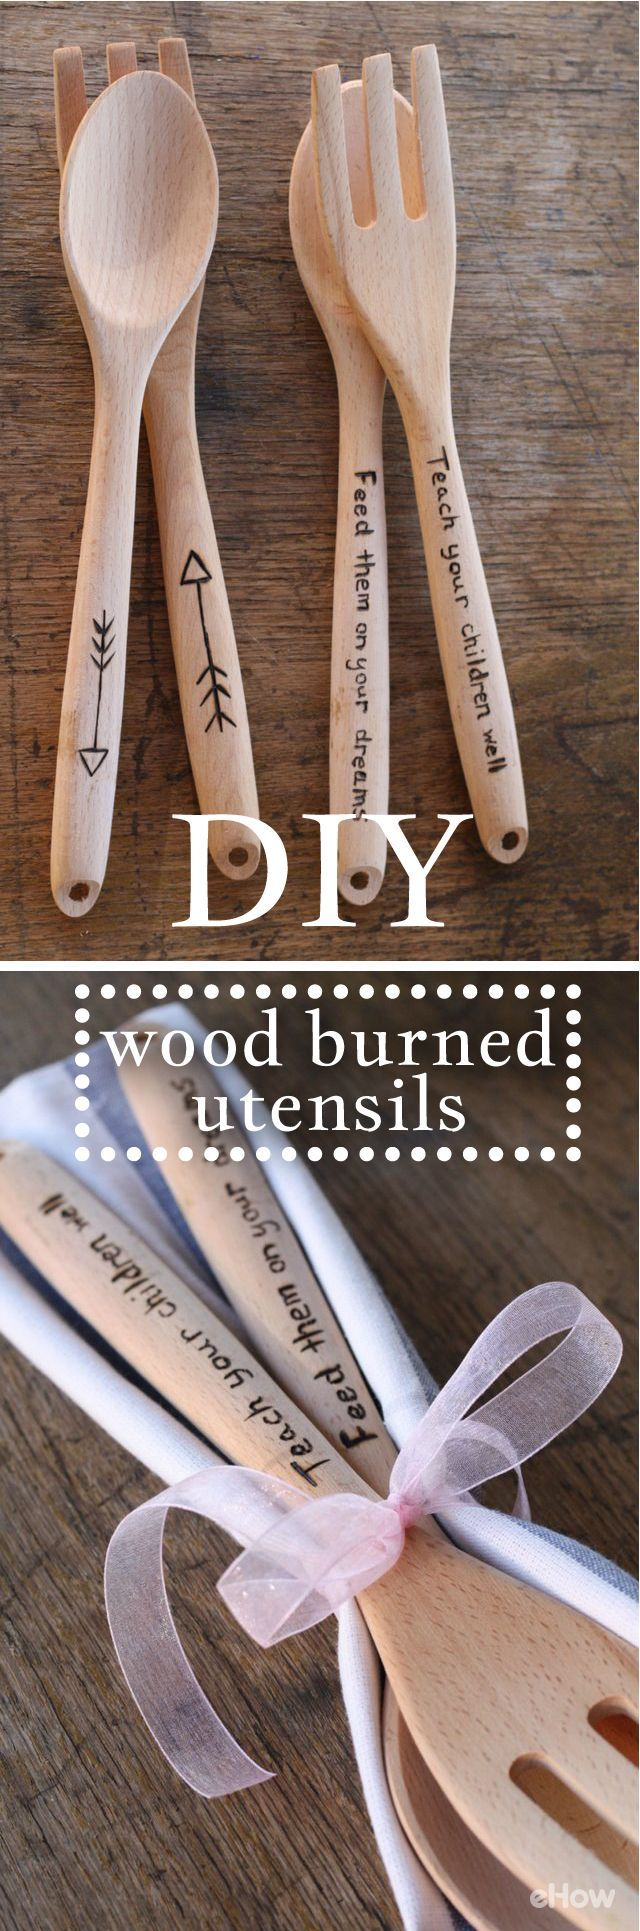 Personalize plain old wooden spoons or salad tongs with a simple to use wood burning tool and a pencil! This makes a terrific host or hostess gift. Get the how-to here: www.ehow.com/how_12340493_customize-serving-utensils-wood-burning-tool.html?utm_source=pinterest.com&utm_medium=referral&utm_content=inline&utm_campaign=fanpage